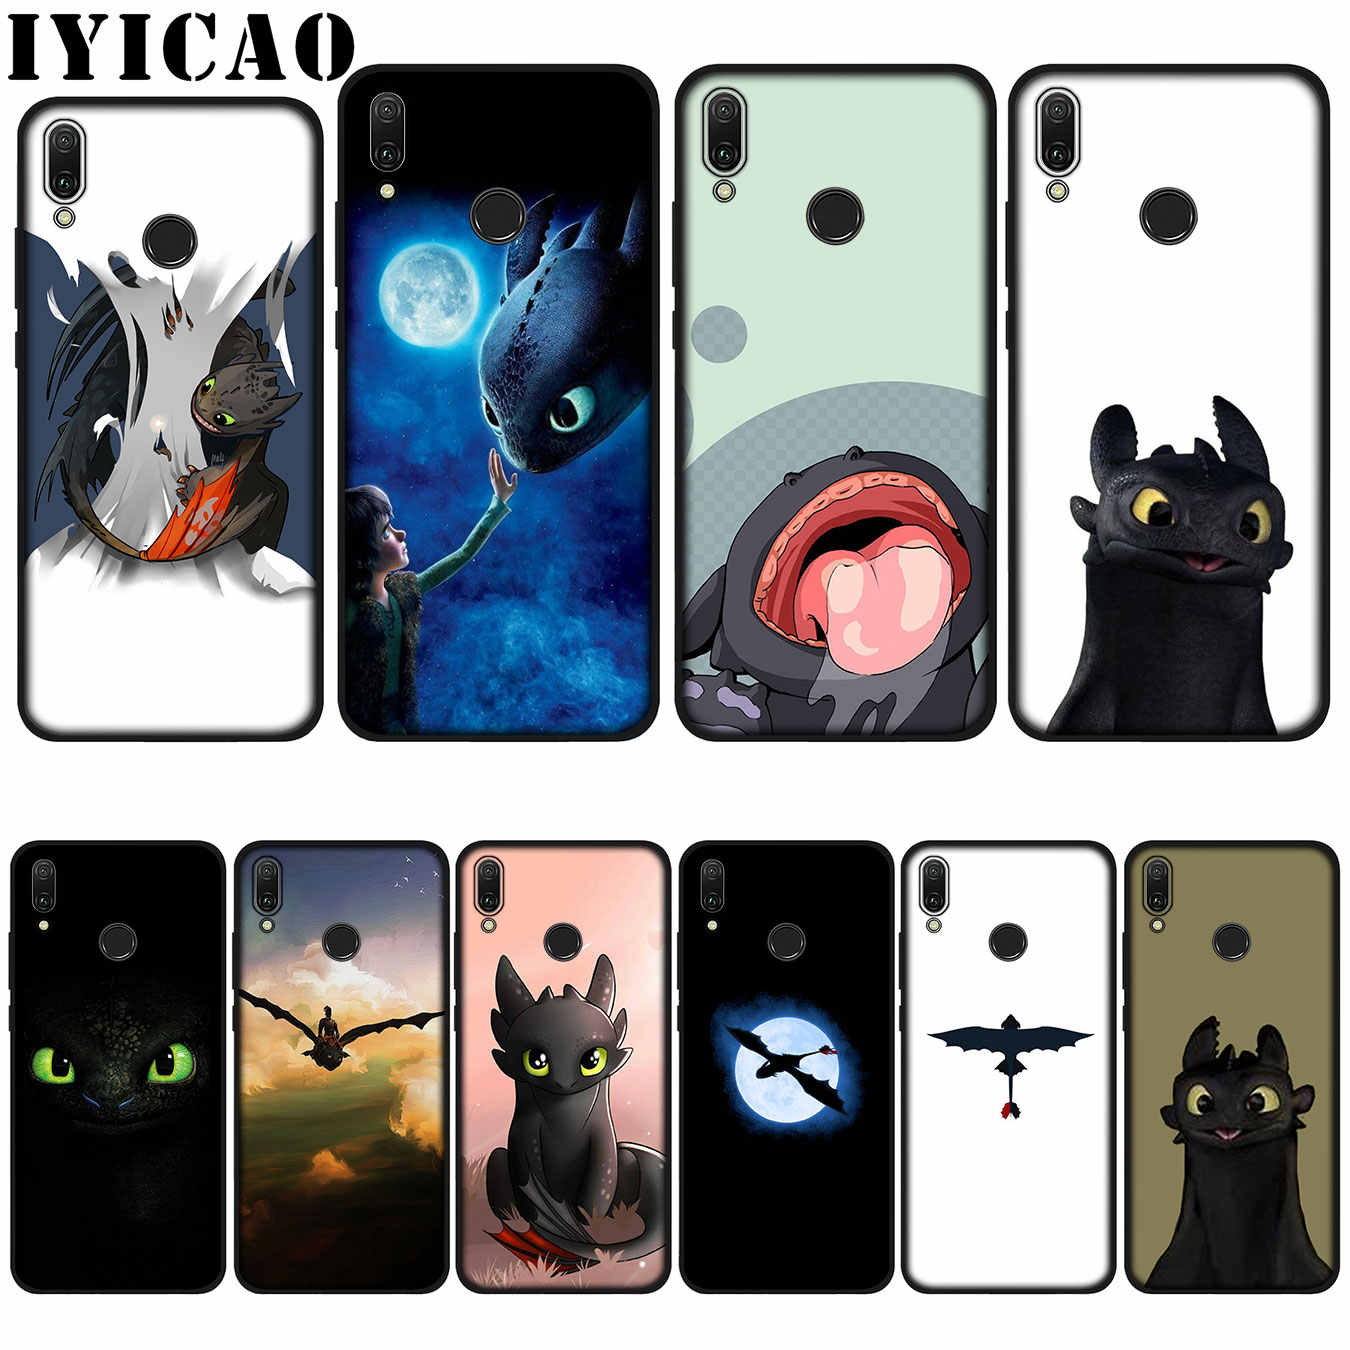 IYICAO sdentato How To Train Your Dragon Custodia Morbida per Huawei P20 Pro P10 P8 P9 P30 Lite Mini 2017 P di Smart 2019